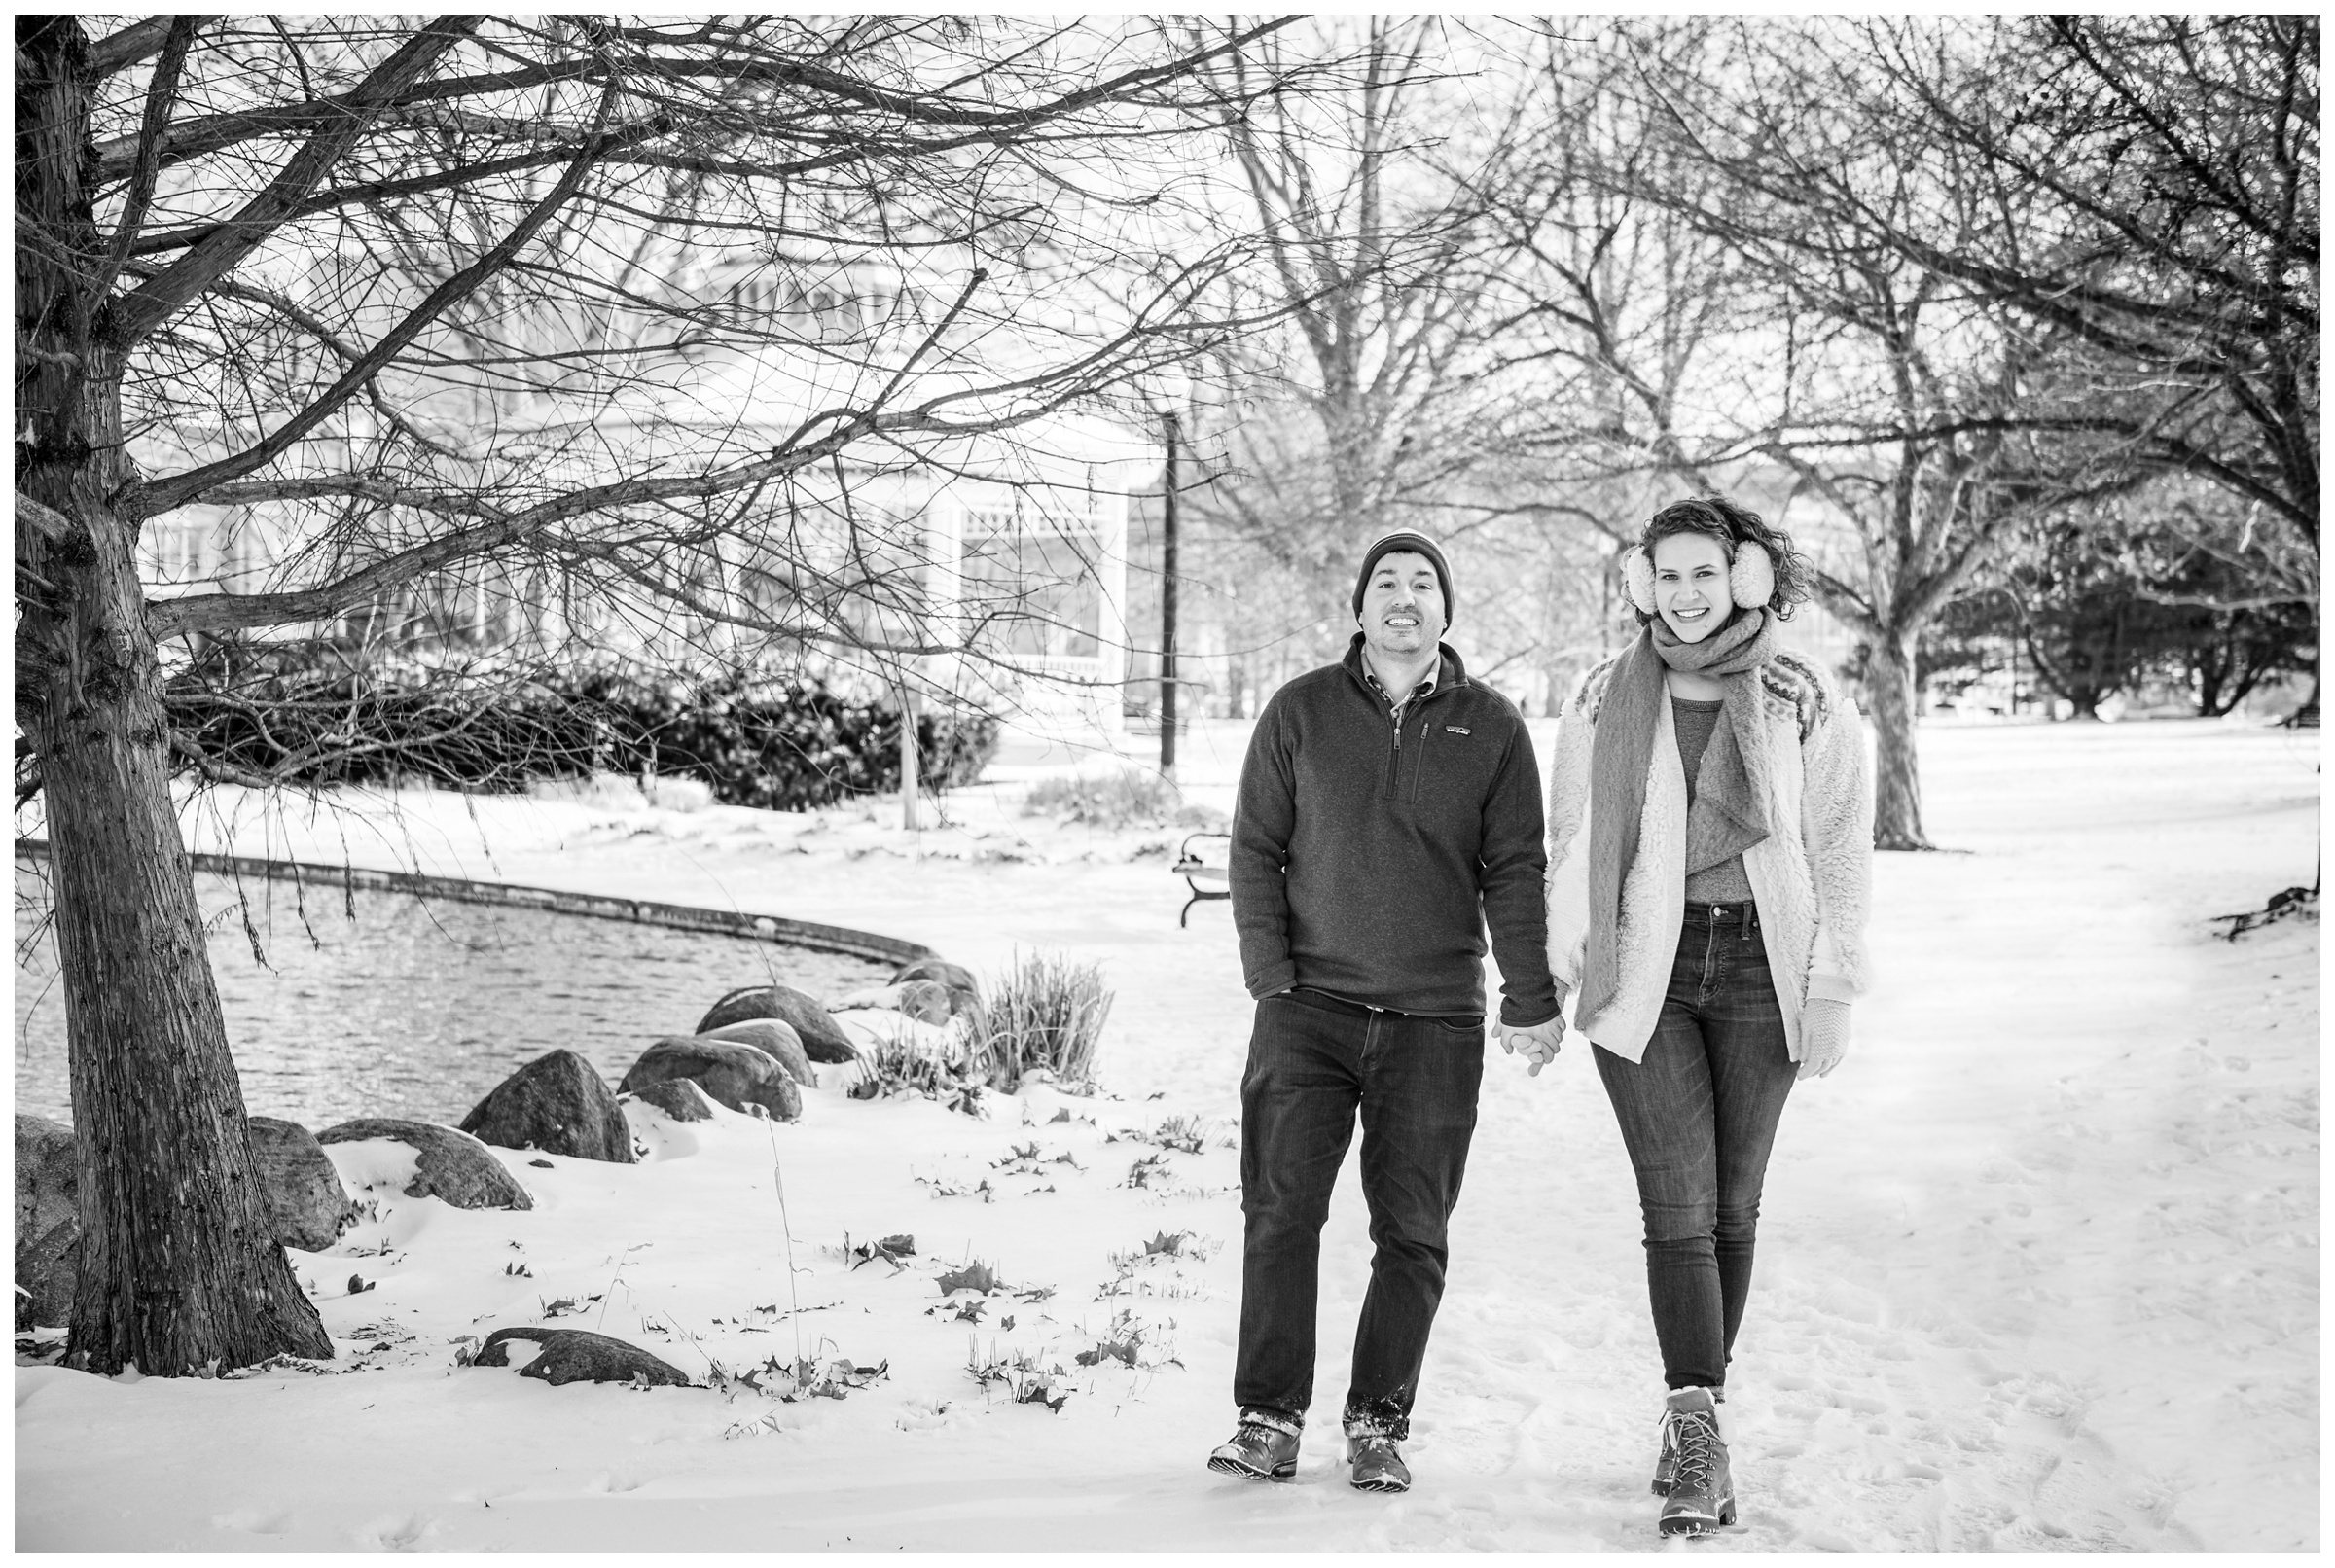 engagement photos in Goodale Park in Columbus, Ohio during snowy winter engagement session